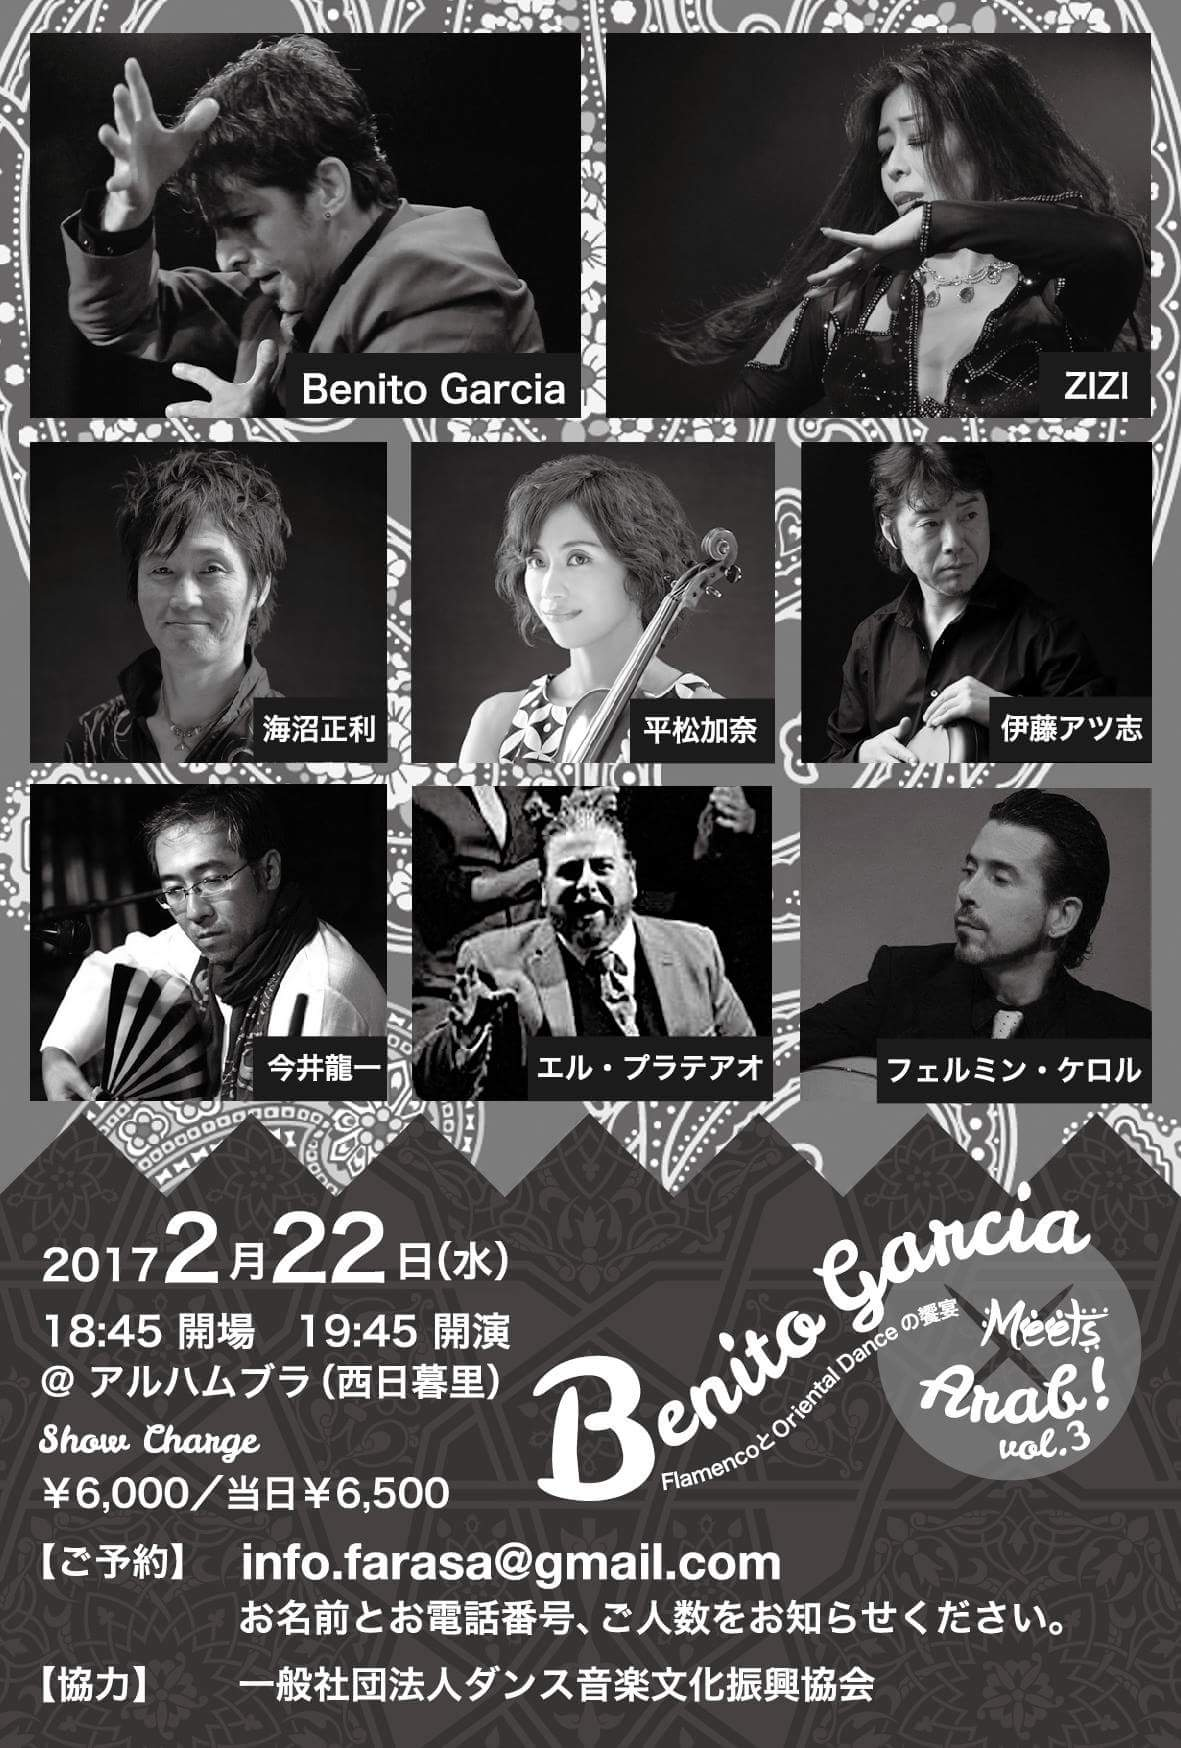 2017.2.22 Wed Benito Garcia Meets Arab Vol.3 FramencoとOriental Danceの饗宴